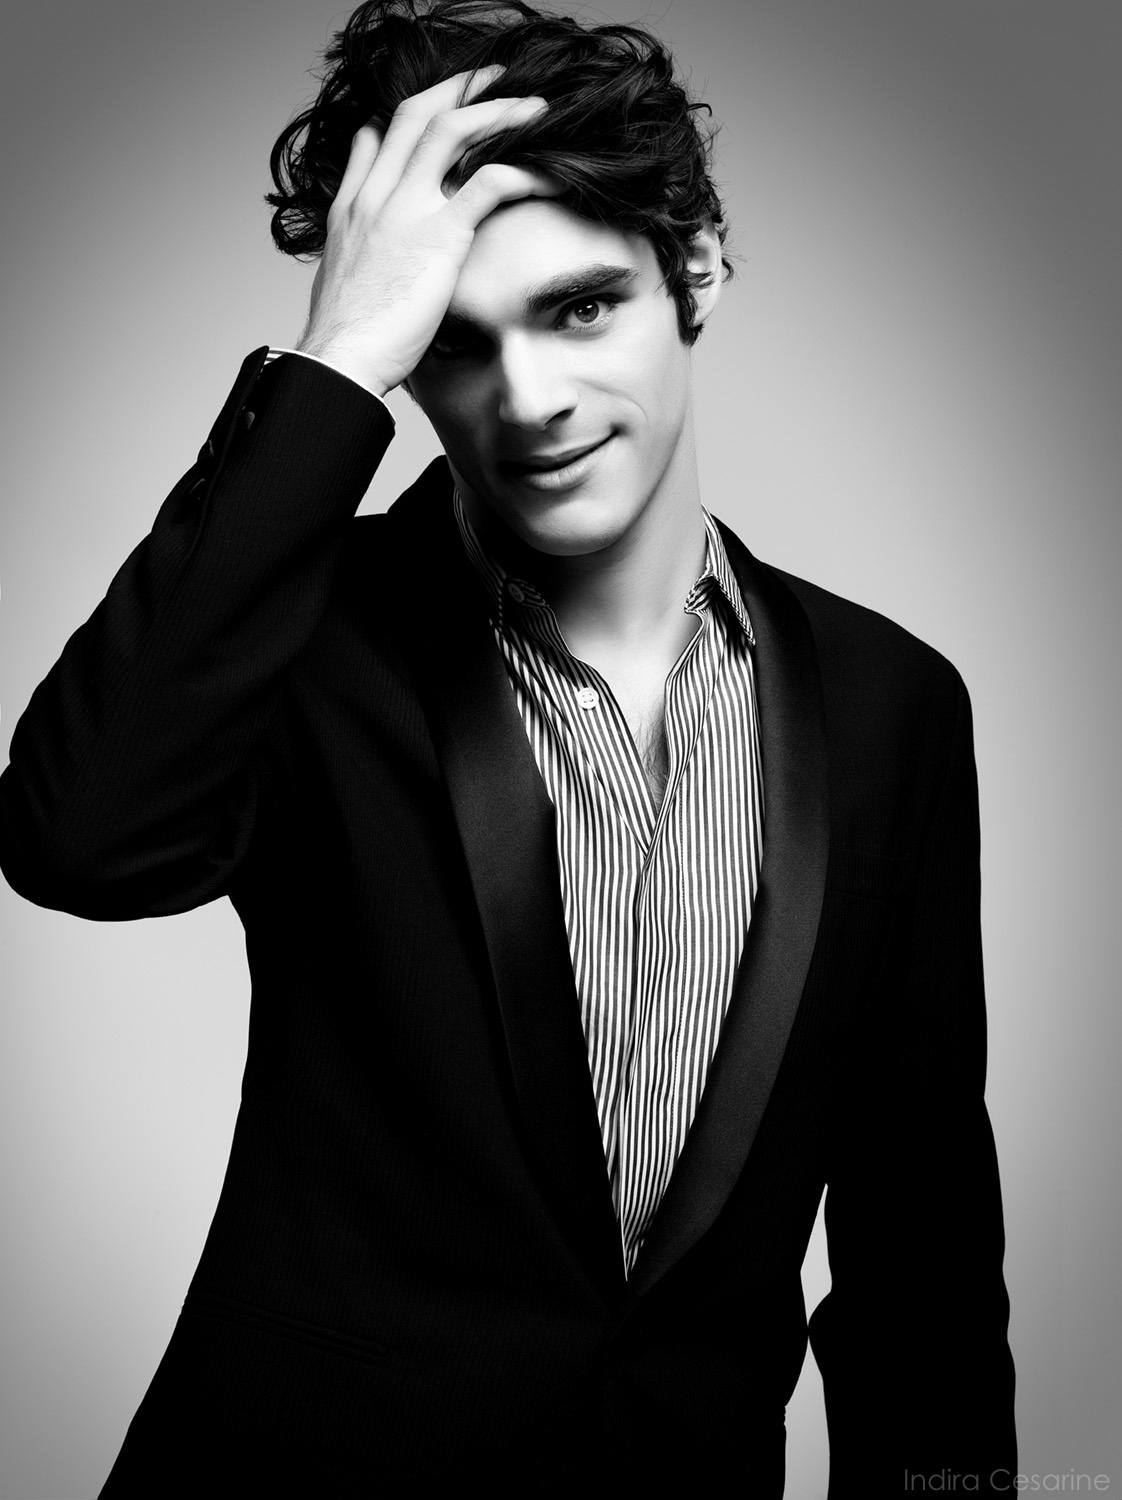 RJ-Mitte-Photography-by-Indira-Cesarine-004.jpg